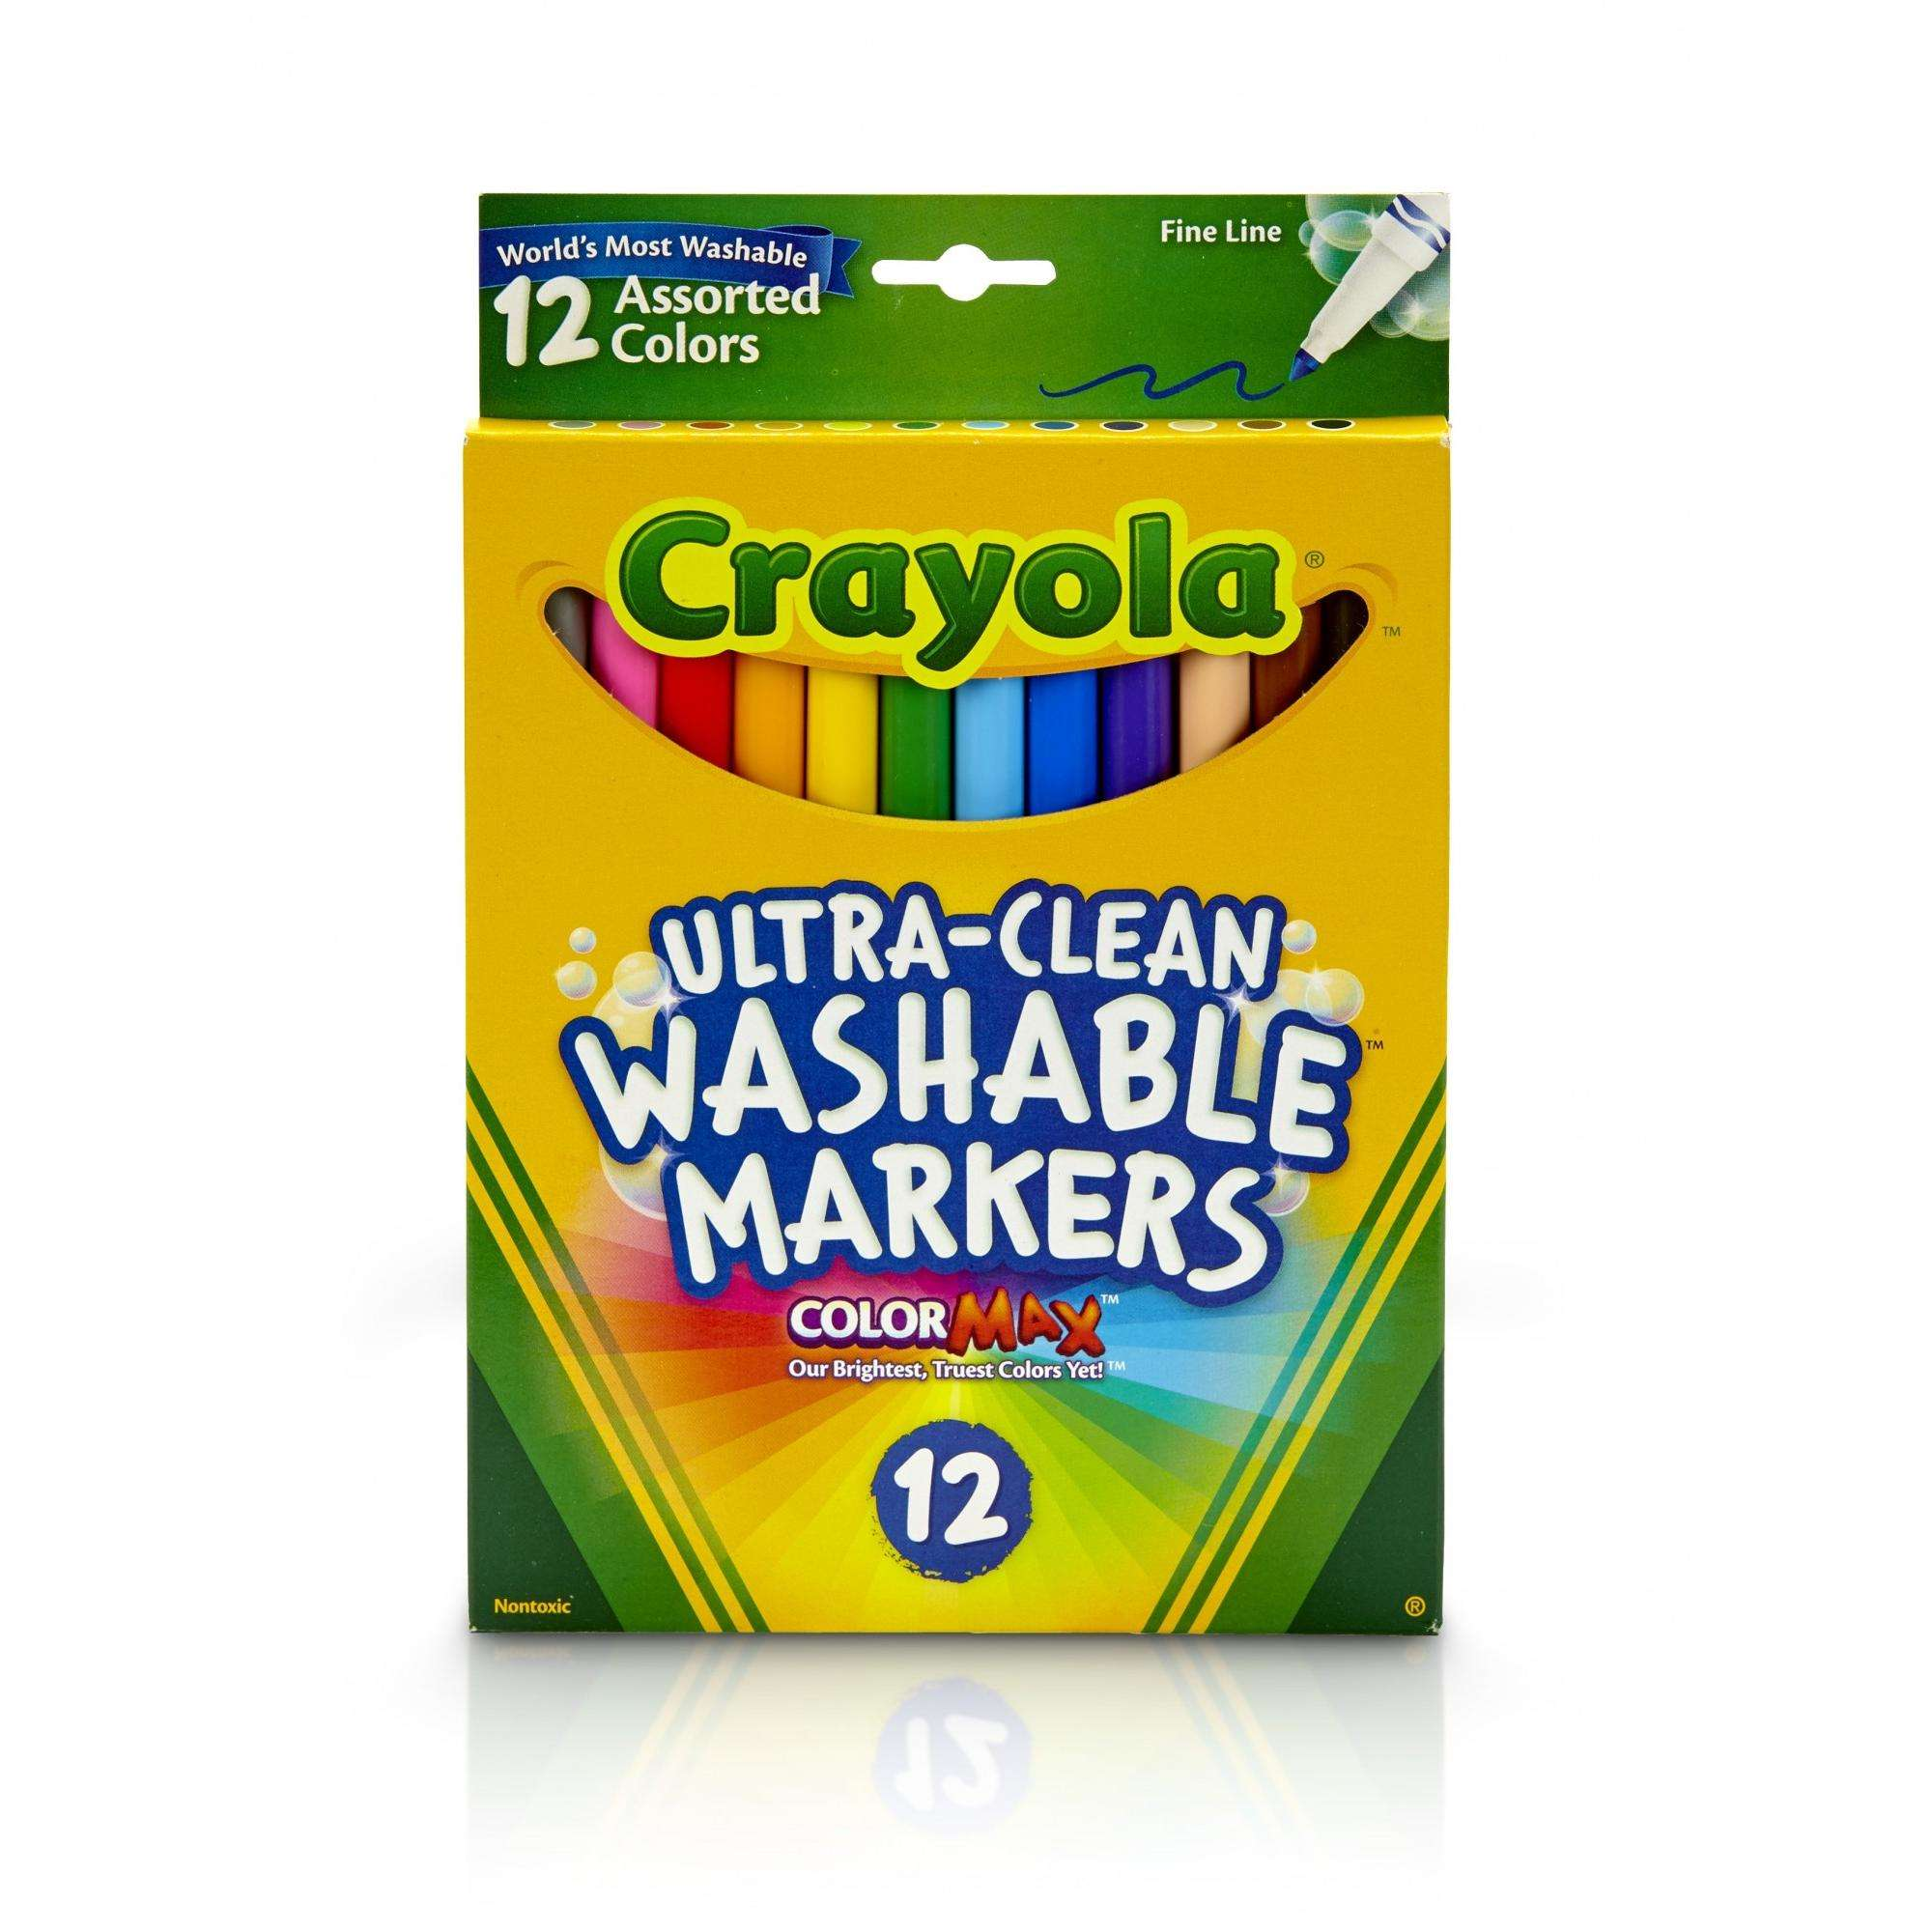 Crayola Ultra Clean Washable Markers, Fine Line, 12 Count